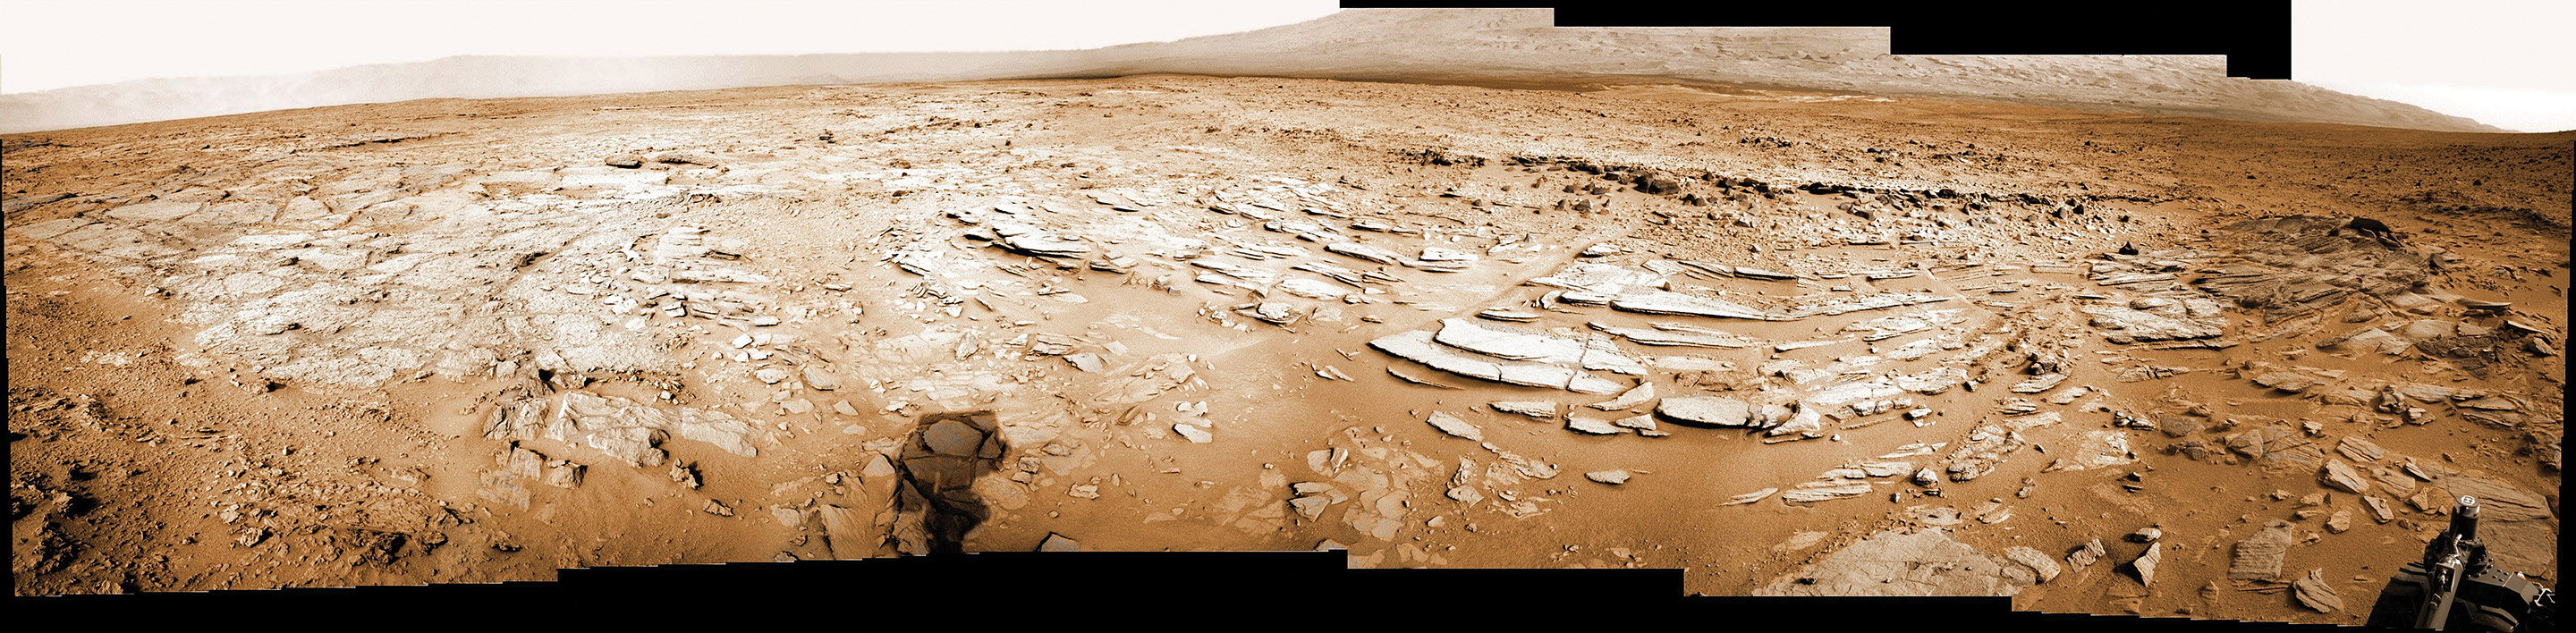 Sol 120 colorized panorama shows big Shaler layered rock outcrop snapped by Curiosity's right eye Navigation Camera (Navcam) on Dec. 7, 2012. Shaler exhibits a pattern known as 'crossbedding', at angles to one another. Mount Sharp visible in the background. Credit: NASA/JPL-Caltech/Ken Kremer/Marco Di Lorenzo